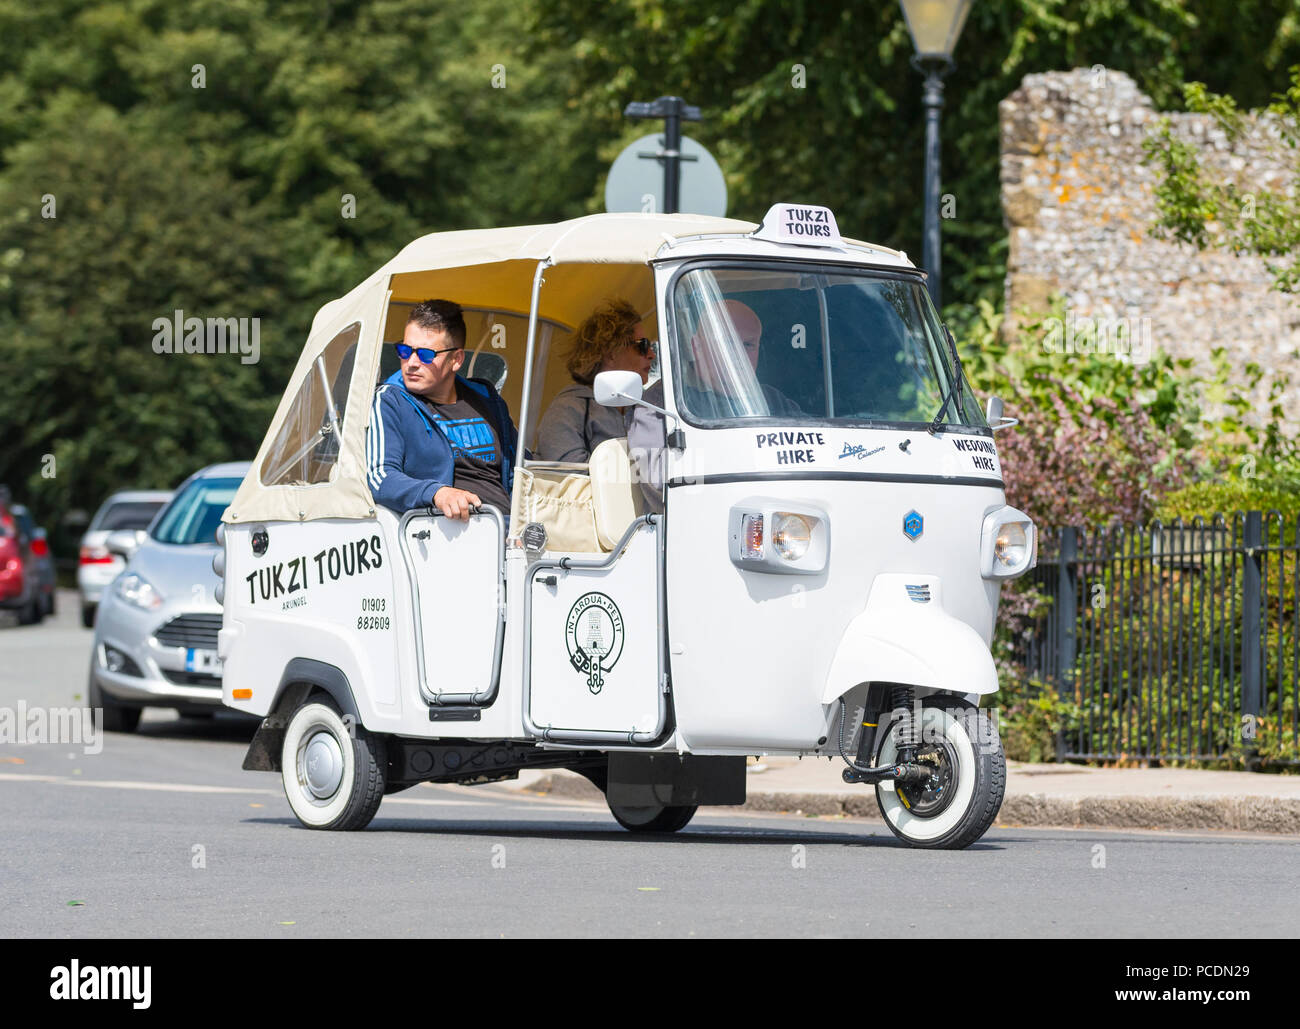 People having a town tour in a Piaggio Ape Calessino 3 wheeled cart (commonly known as a Tuk Tuk vehicle) from Tukzi Tours in Arundel, West Sussex, UK. - Stock Image